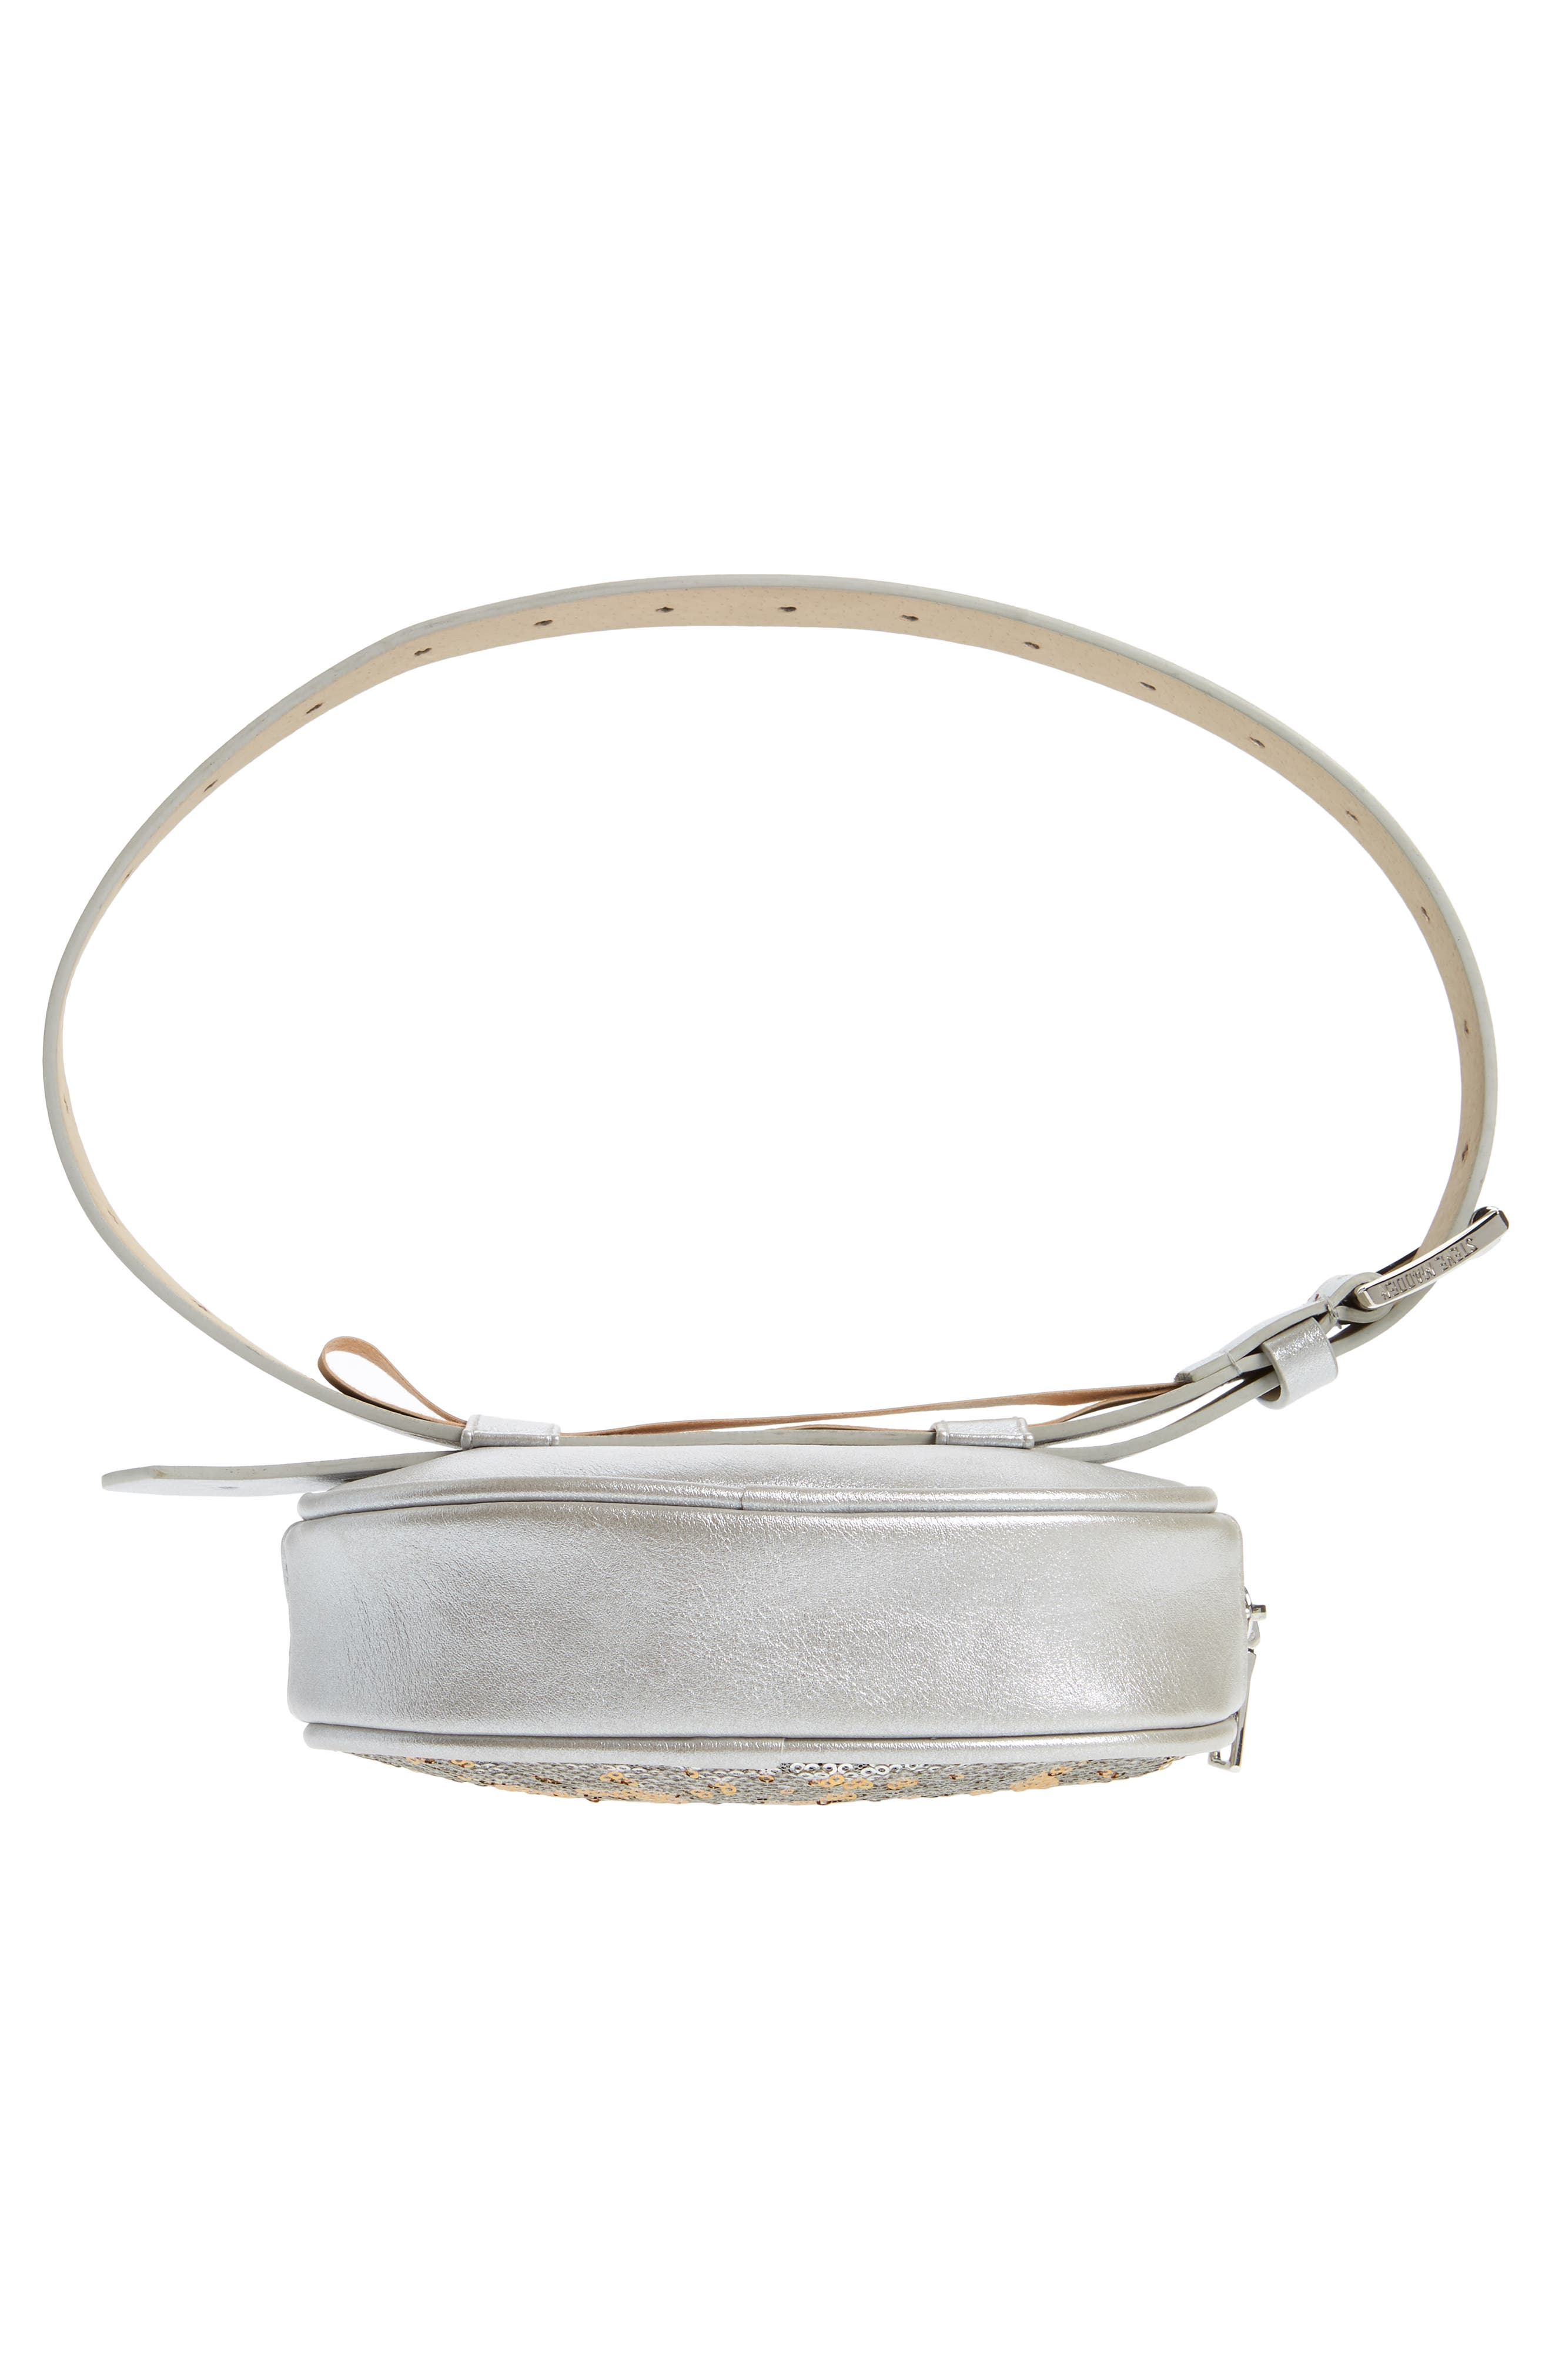 Sequin Faux Leather Belt Bag,                             Alternate thumbnail 7, color,                             SILVER